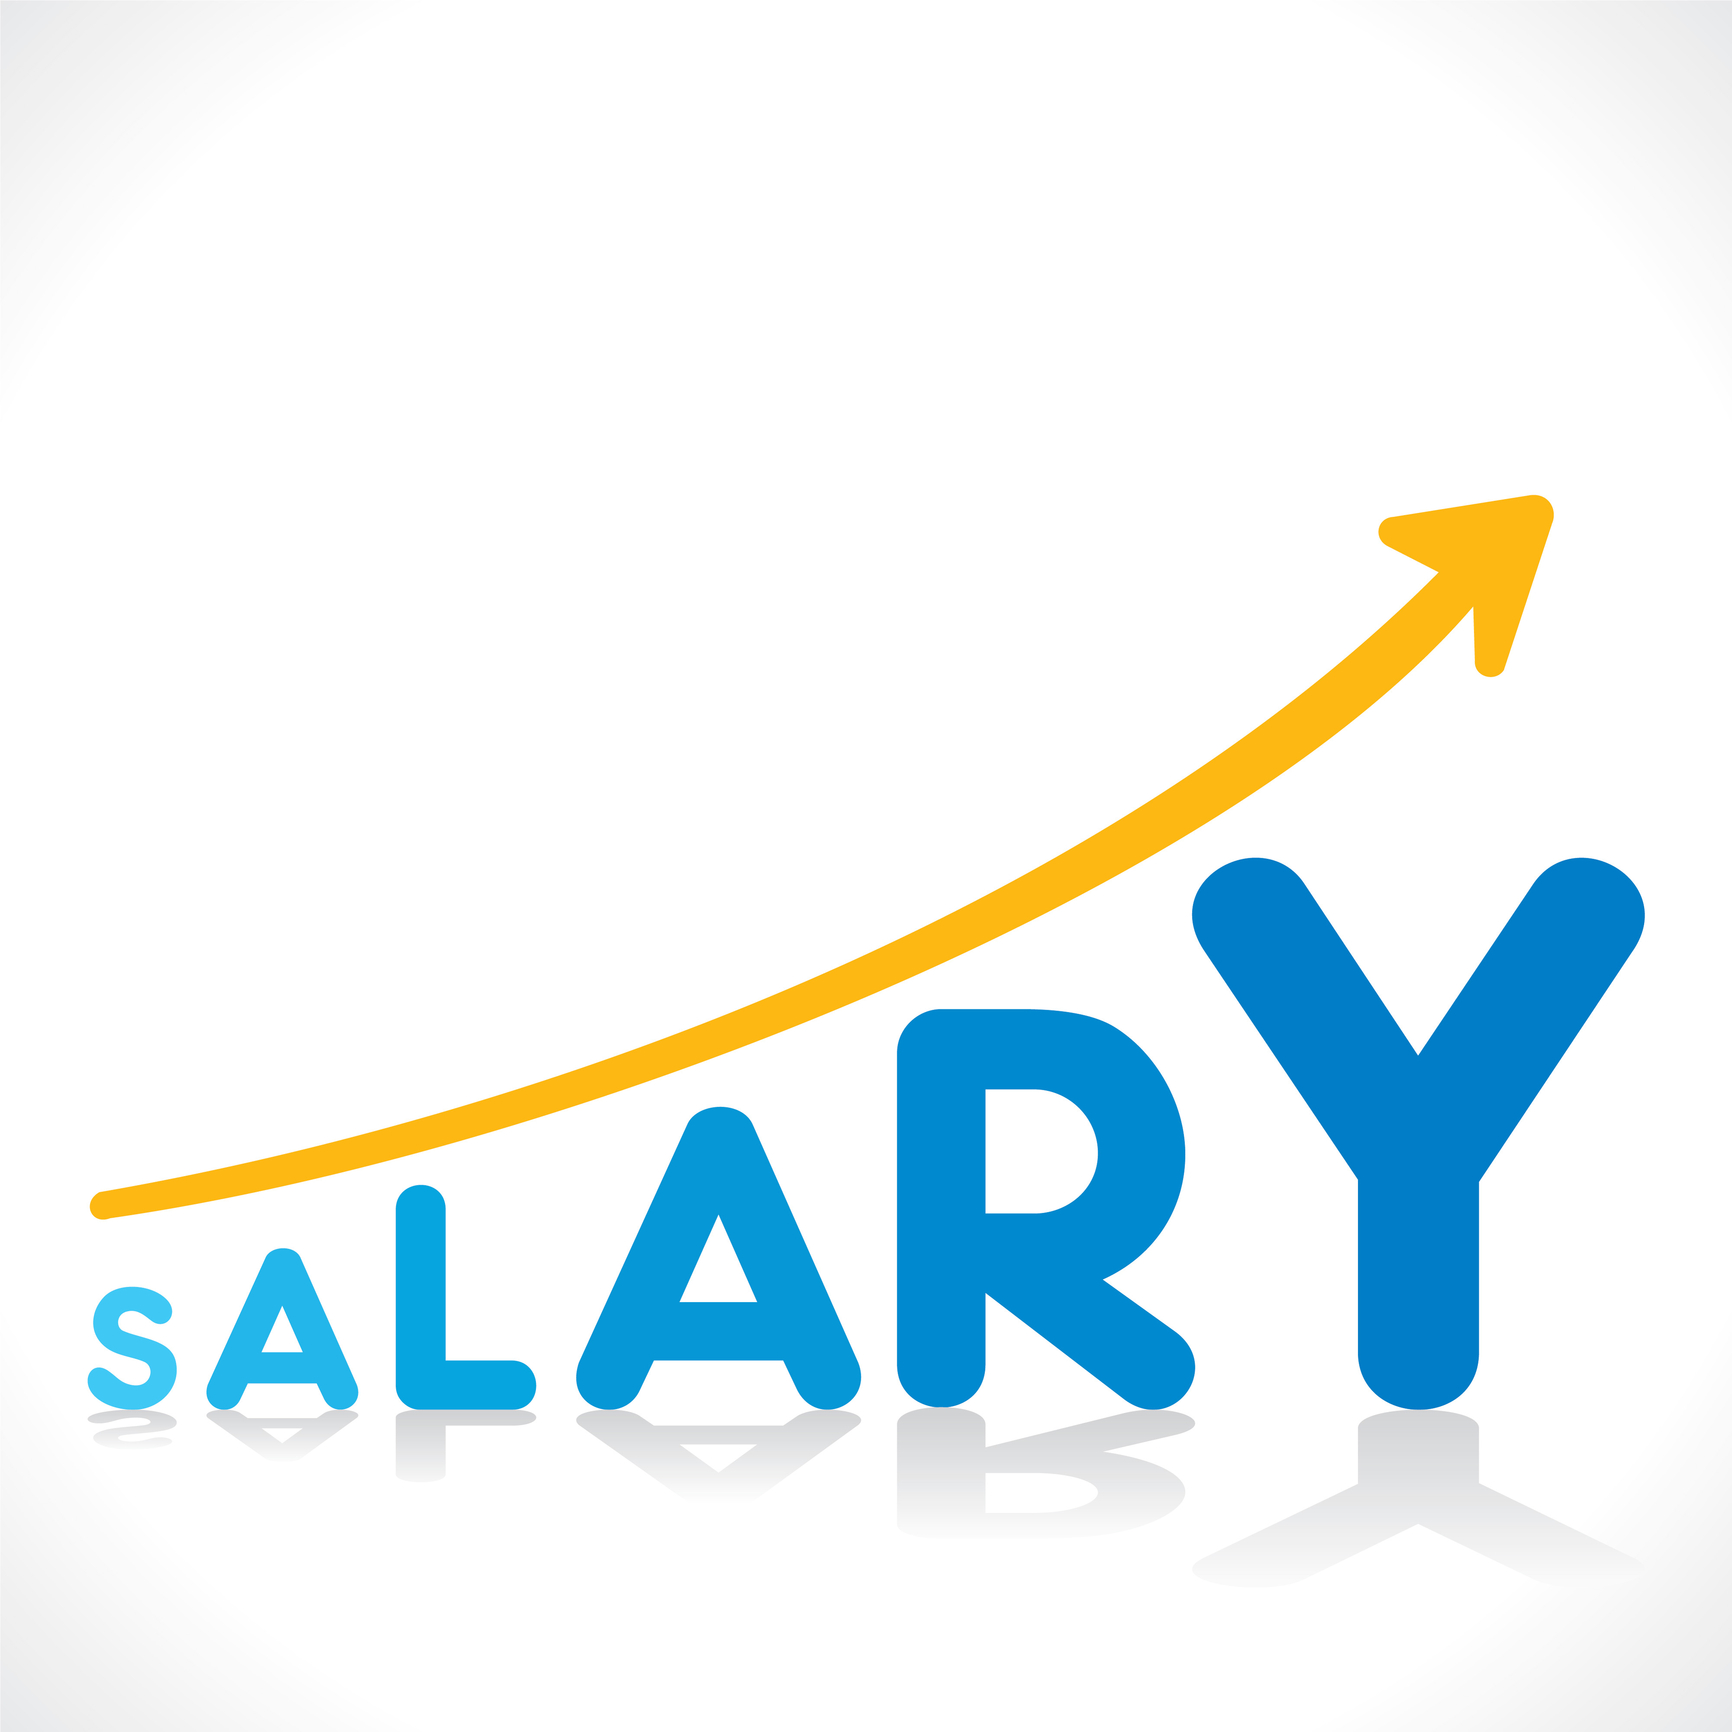 http://www.dreamstime.com/royalty-free-stock-photos-creative-salary-growth-concept-increment-graph-design-vector-image40716718